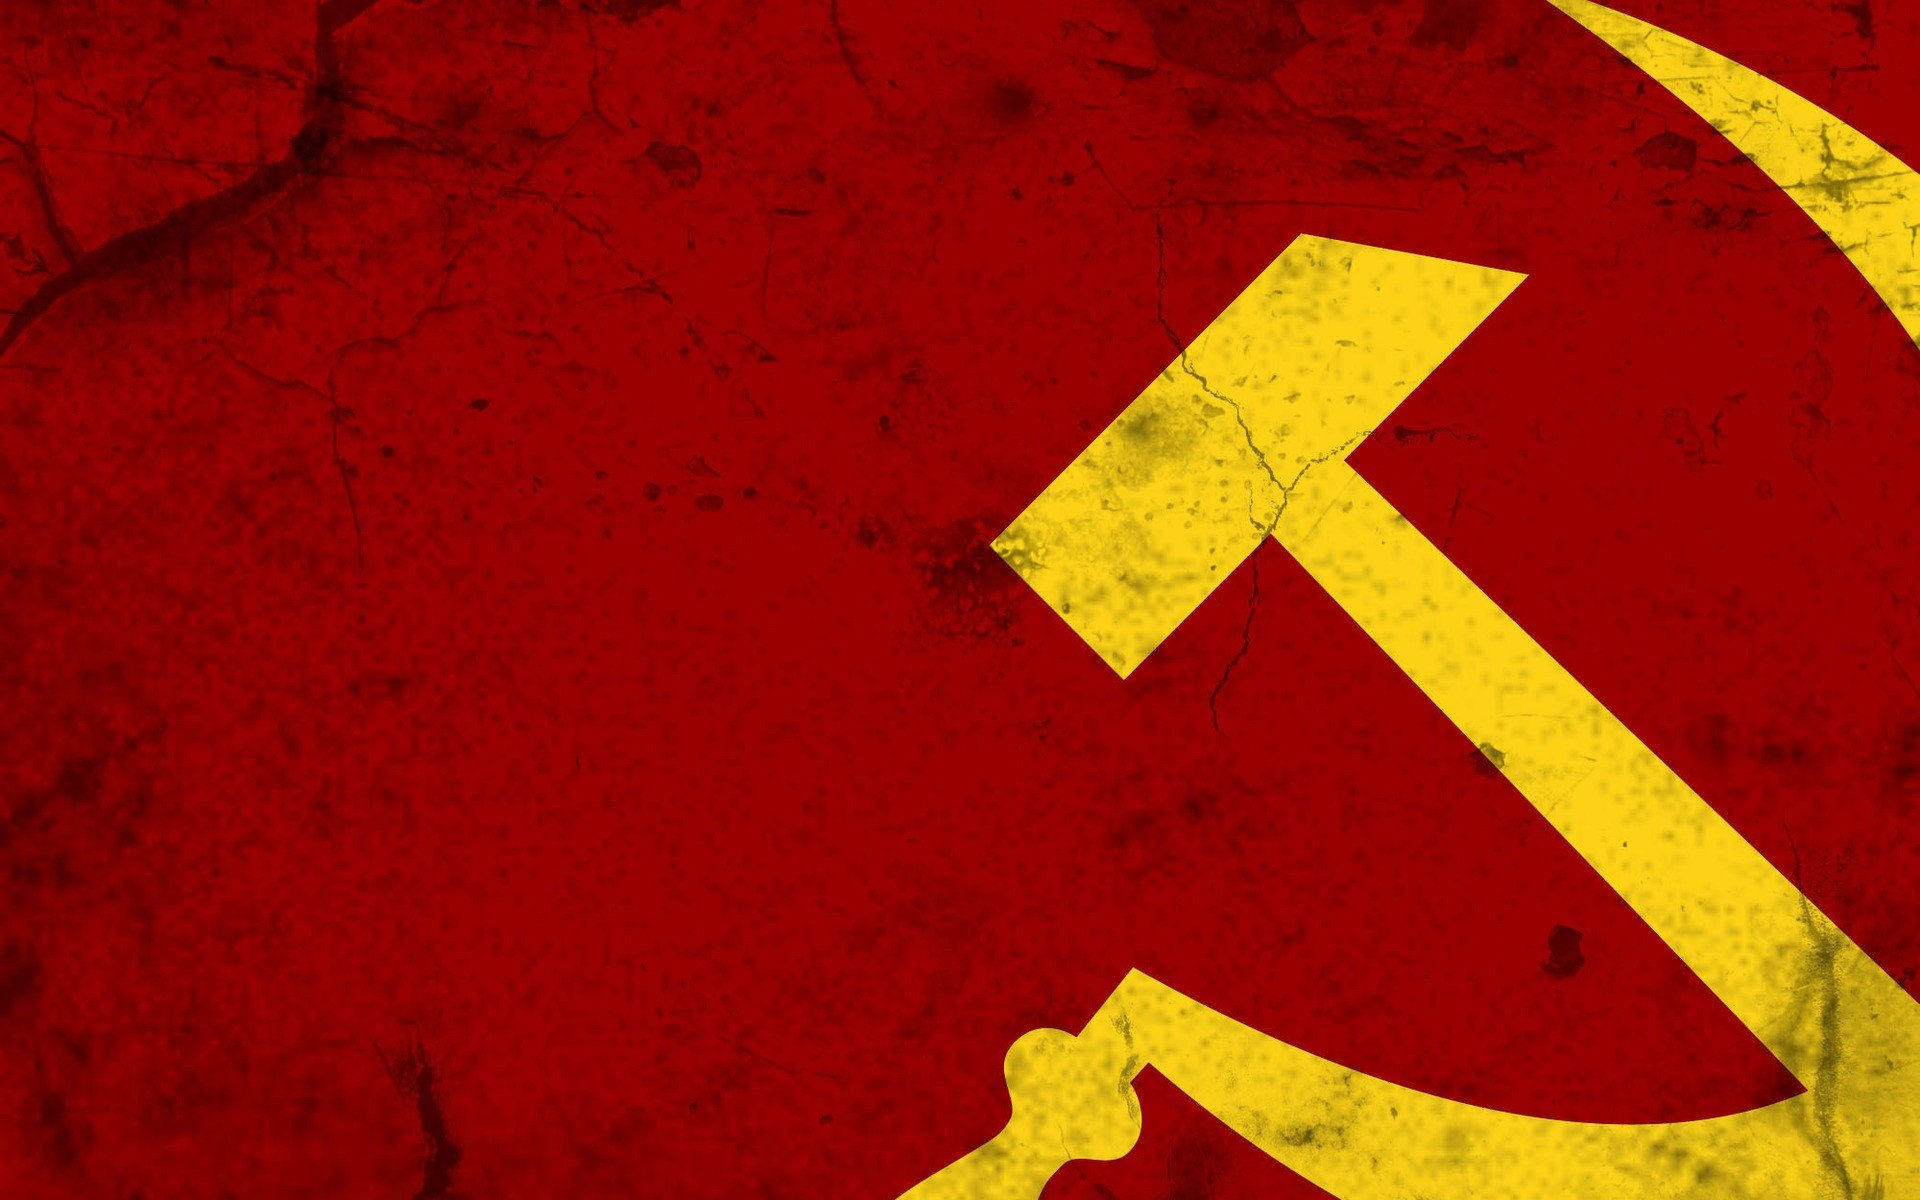 Soviet russia wallpaper wallpapersafari - Ussr wallpaper ...